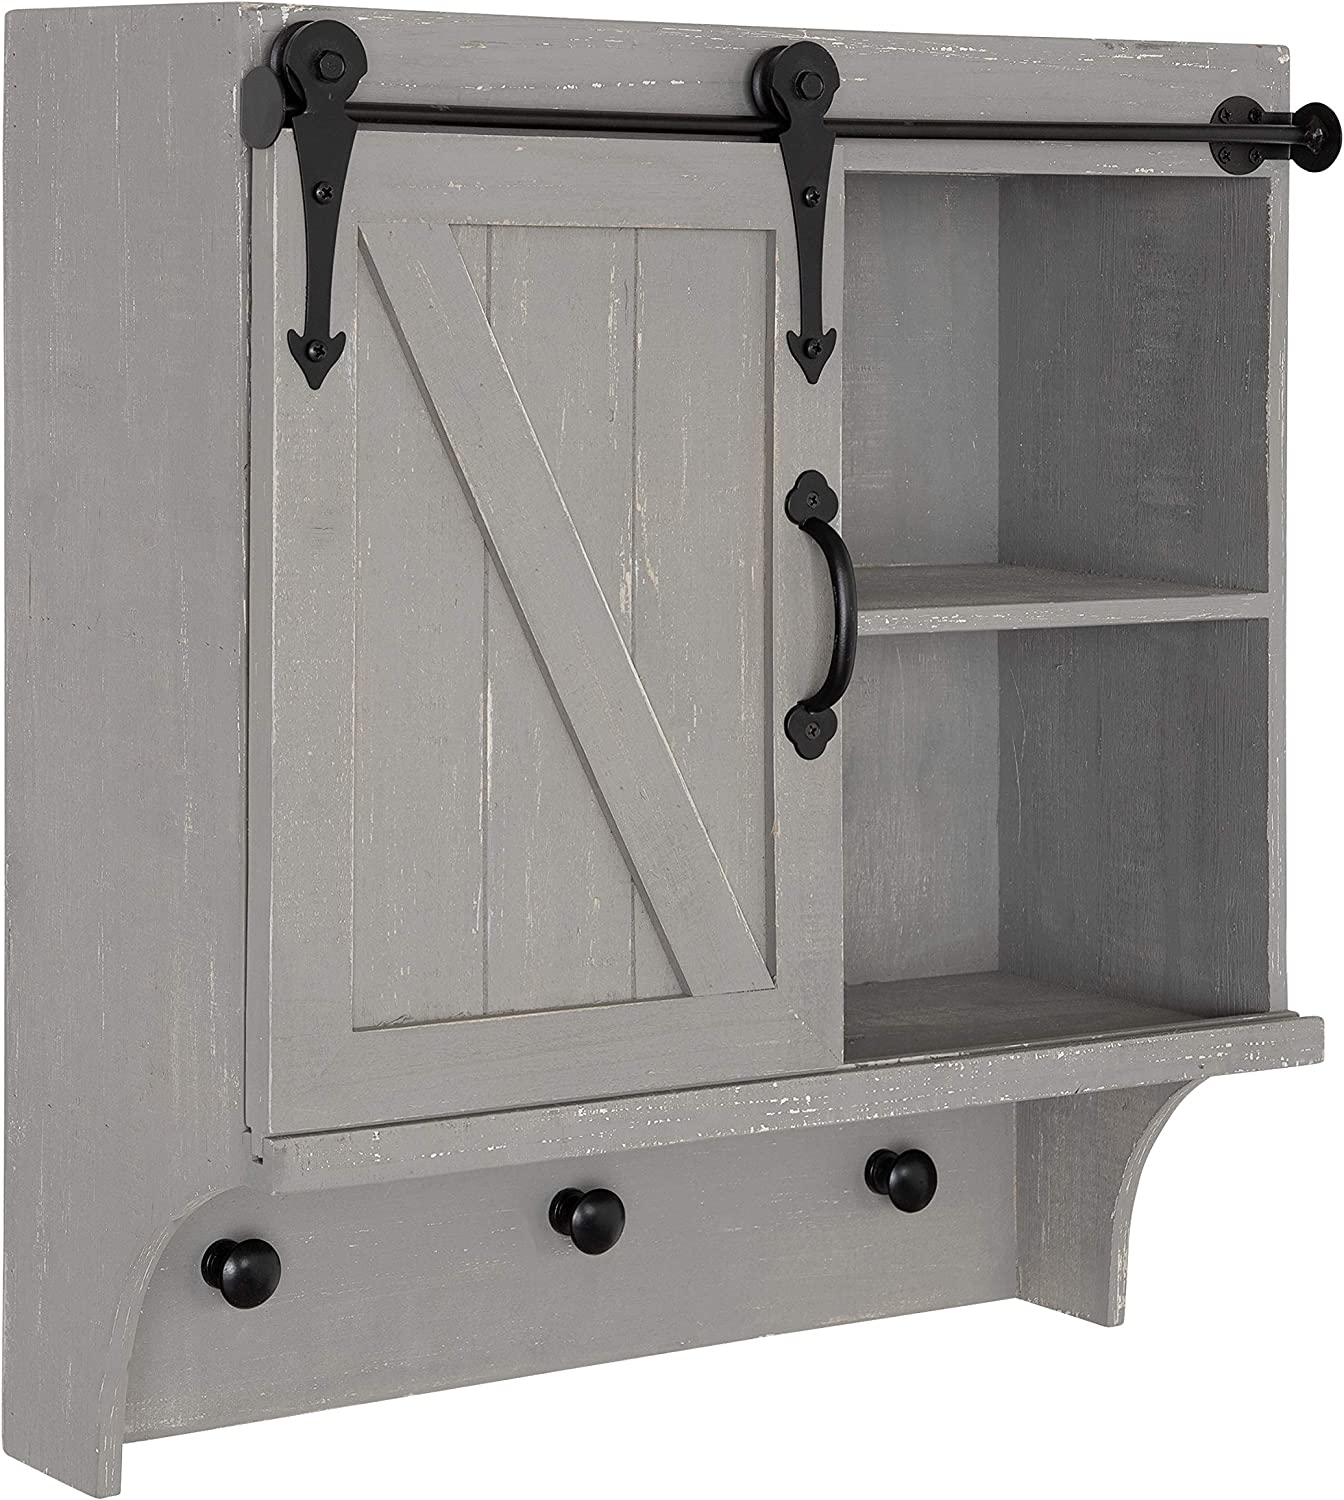 Kate and Laurel Cates Decorative Farmhouse Cabinet Wall Organizer with Sliding Barn Door and 3 Knobs, 18 x 8 x 20, Gray, Shabby-Chic Farmhouse-Inspired Mail and Key Holder for Wall